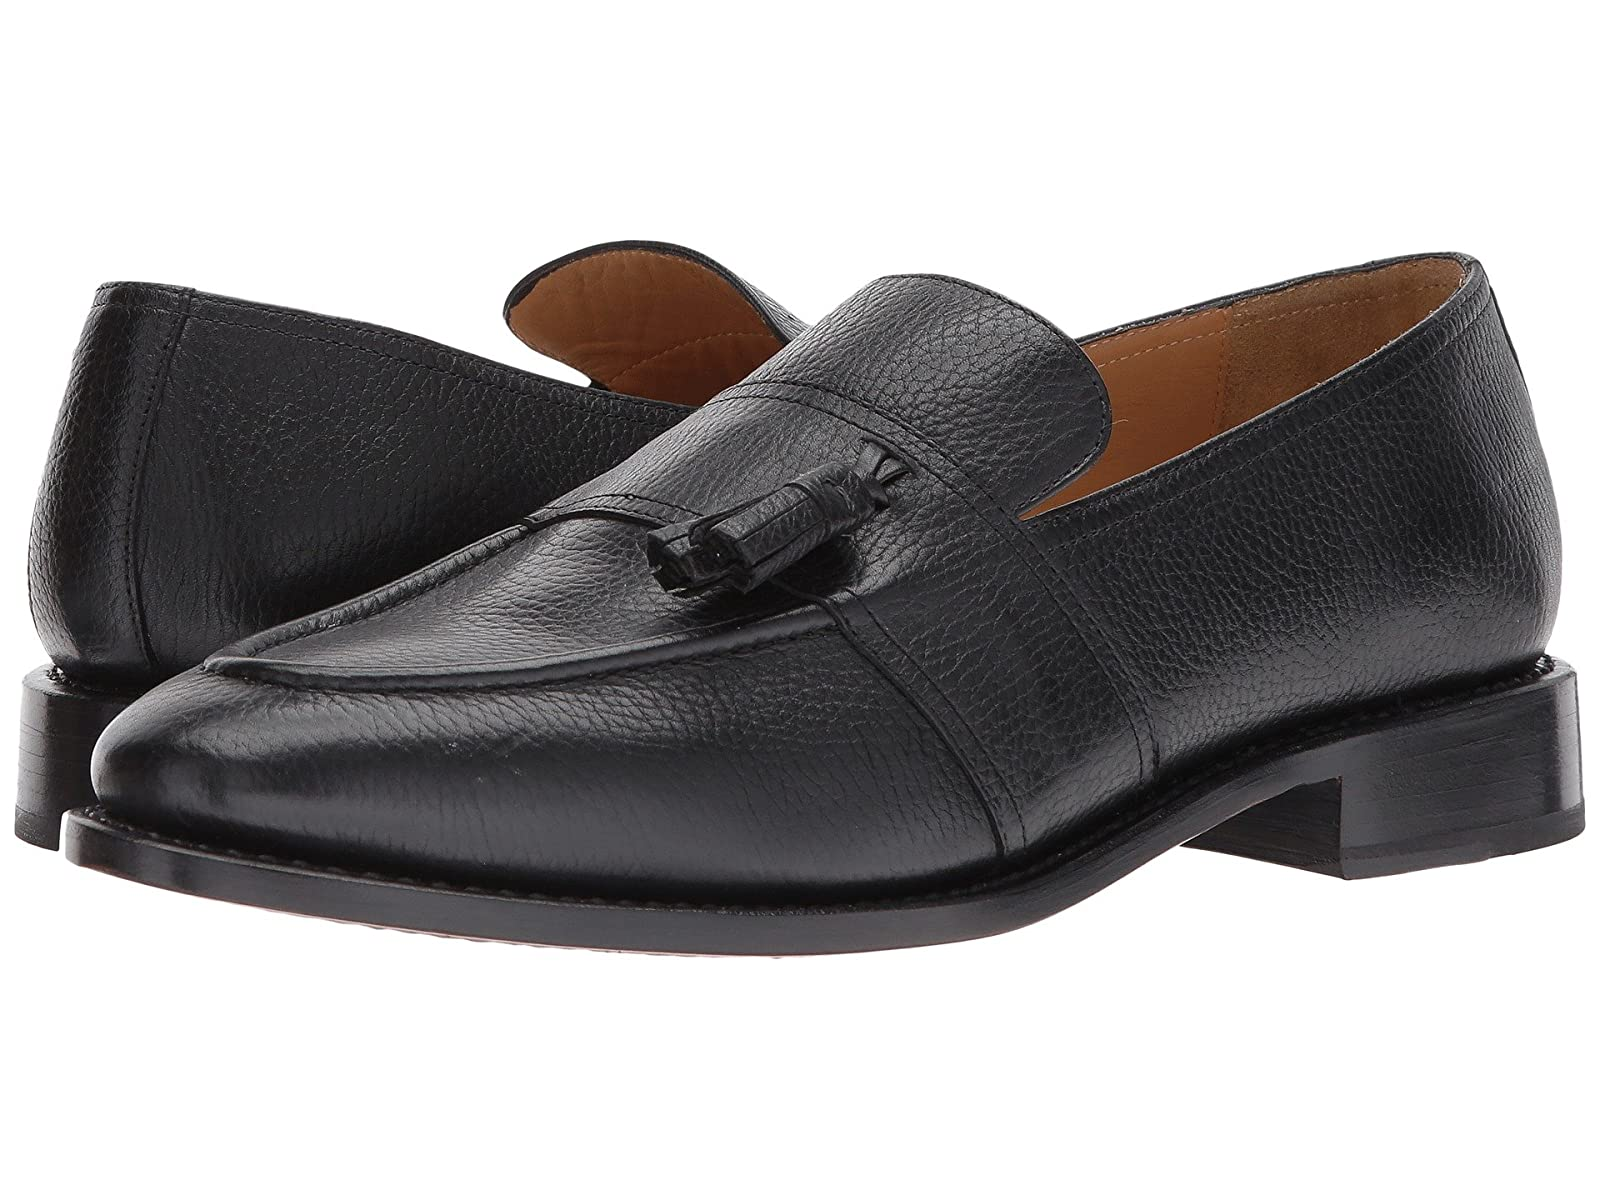 Michael Bastian Gray Label Sidney Tassel LoaferCheap and distinctive eye-catching shoes